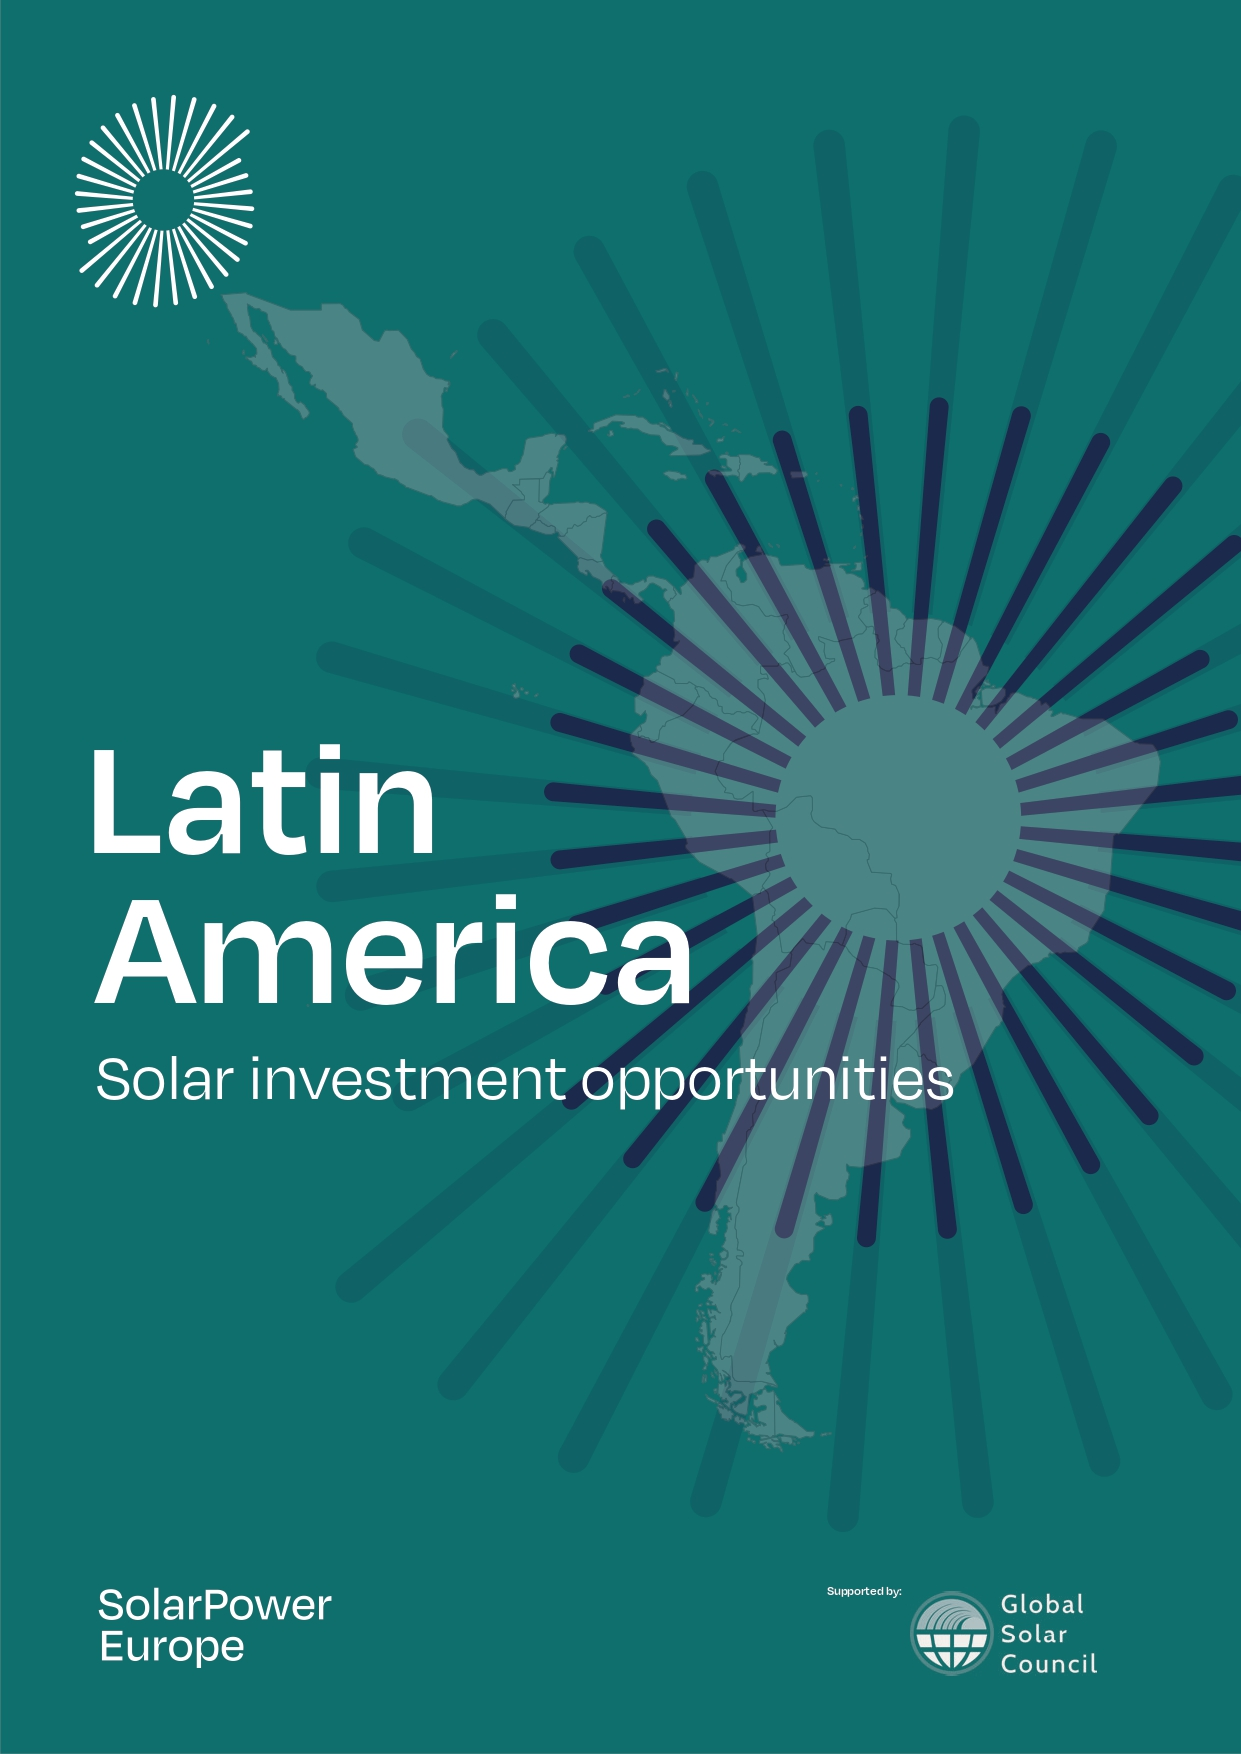 Portada-Solar-investment-opportunities-in-Latin-America-2-1 (1)_page-0001